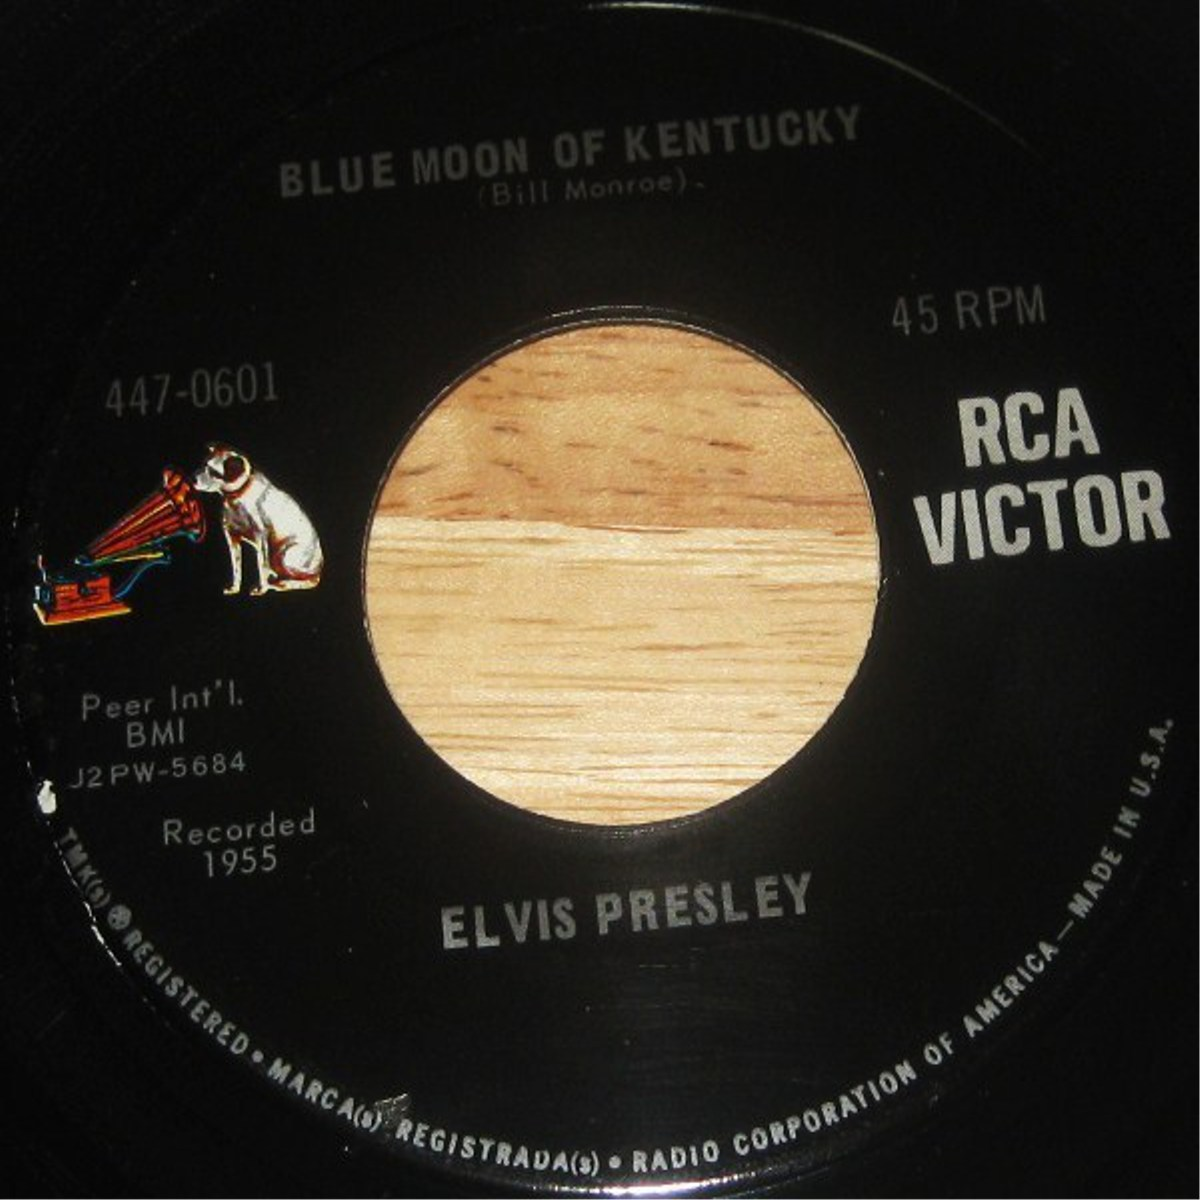 That's All Right / Blue Moon Of Kentucky 447-0601d08j32